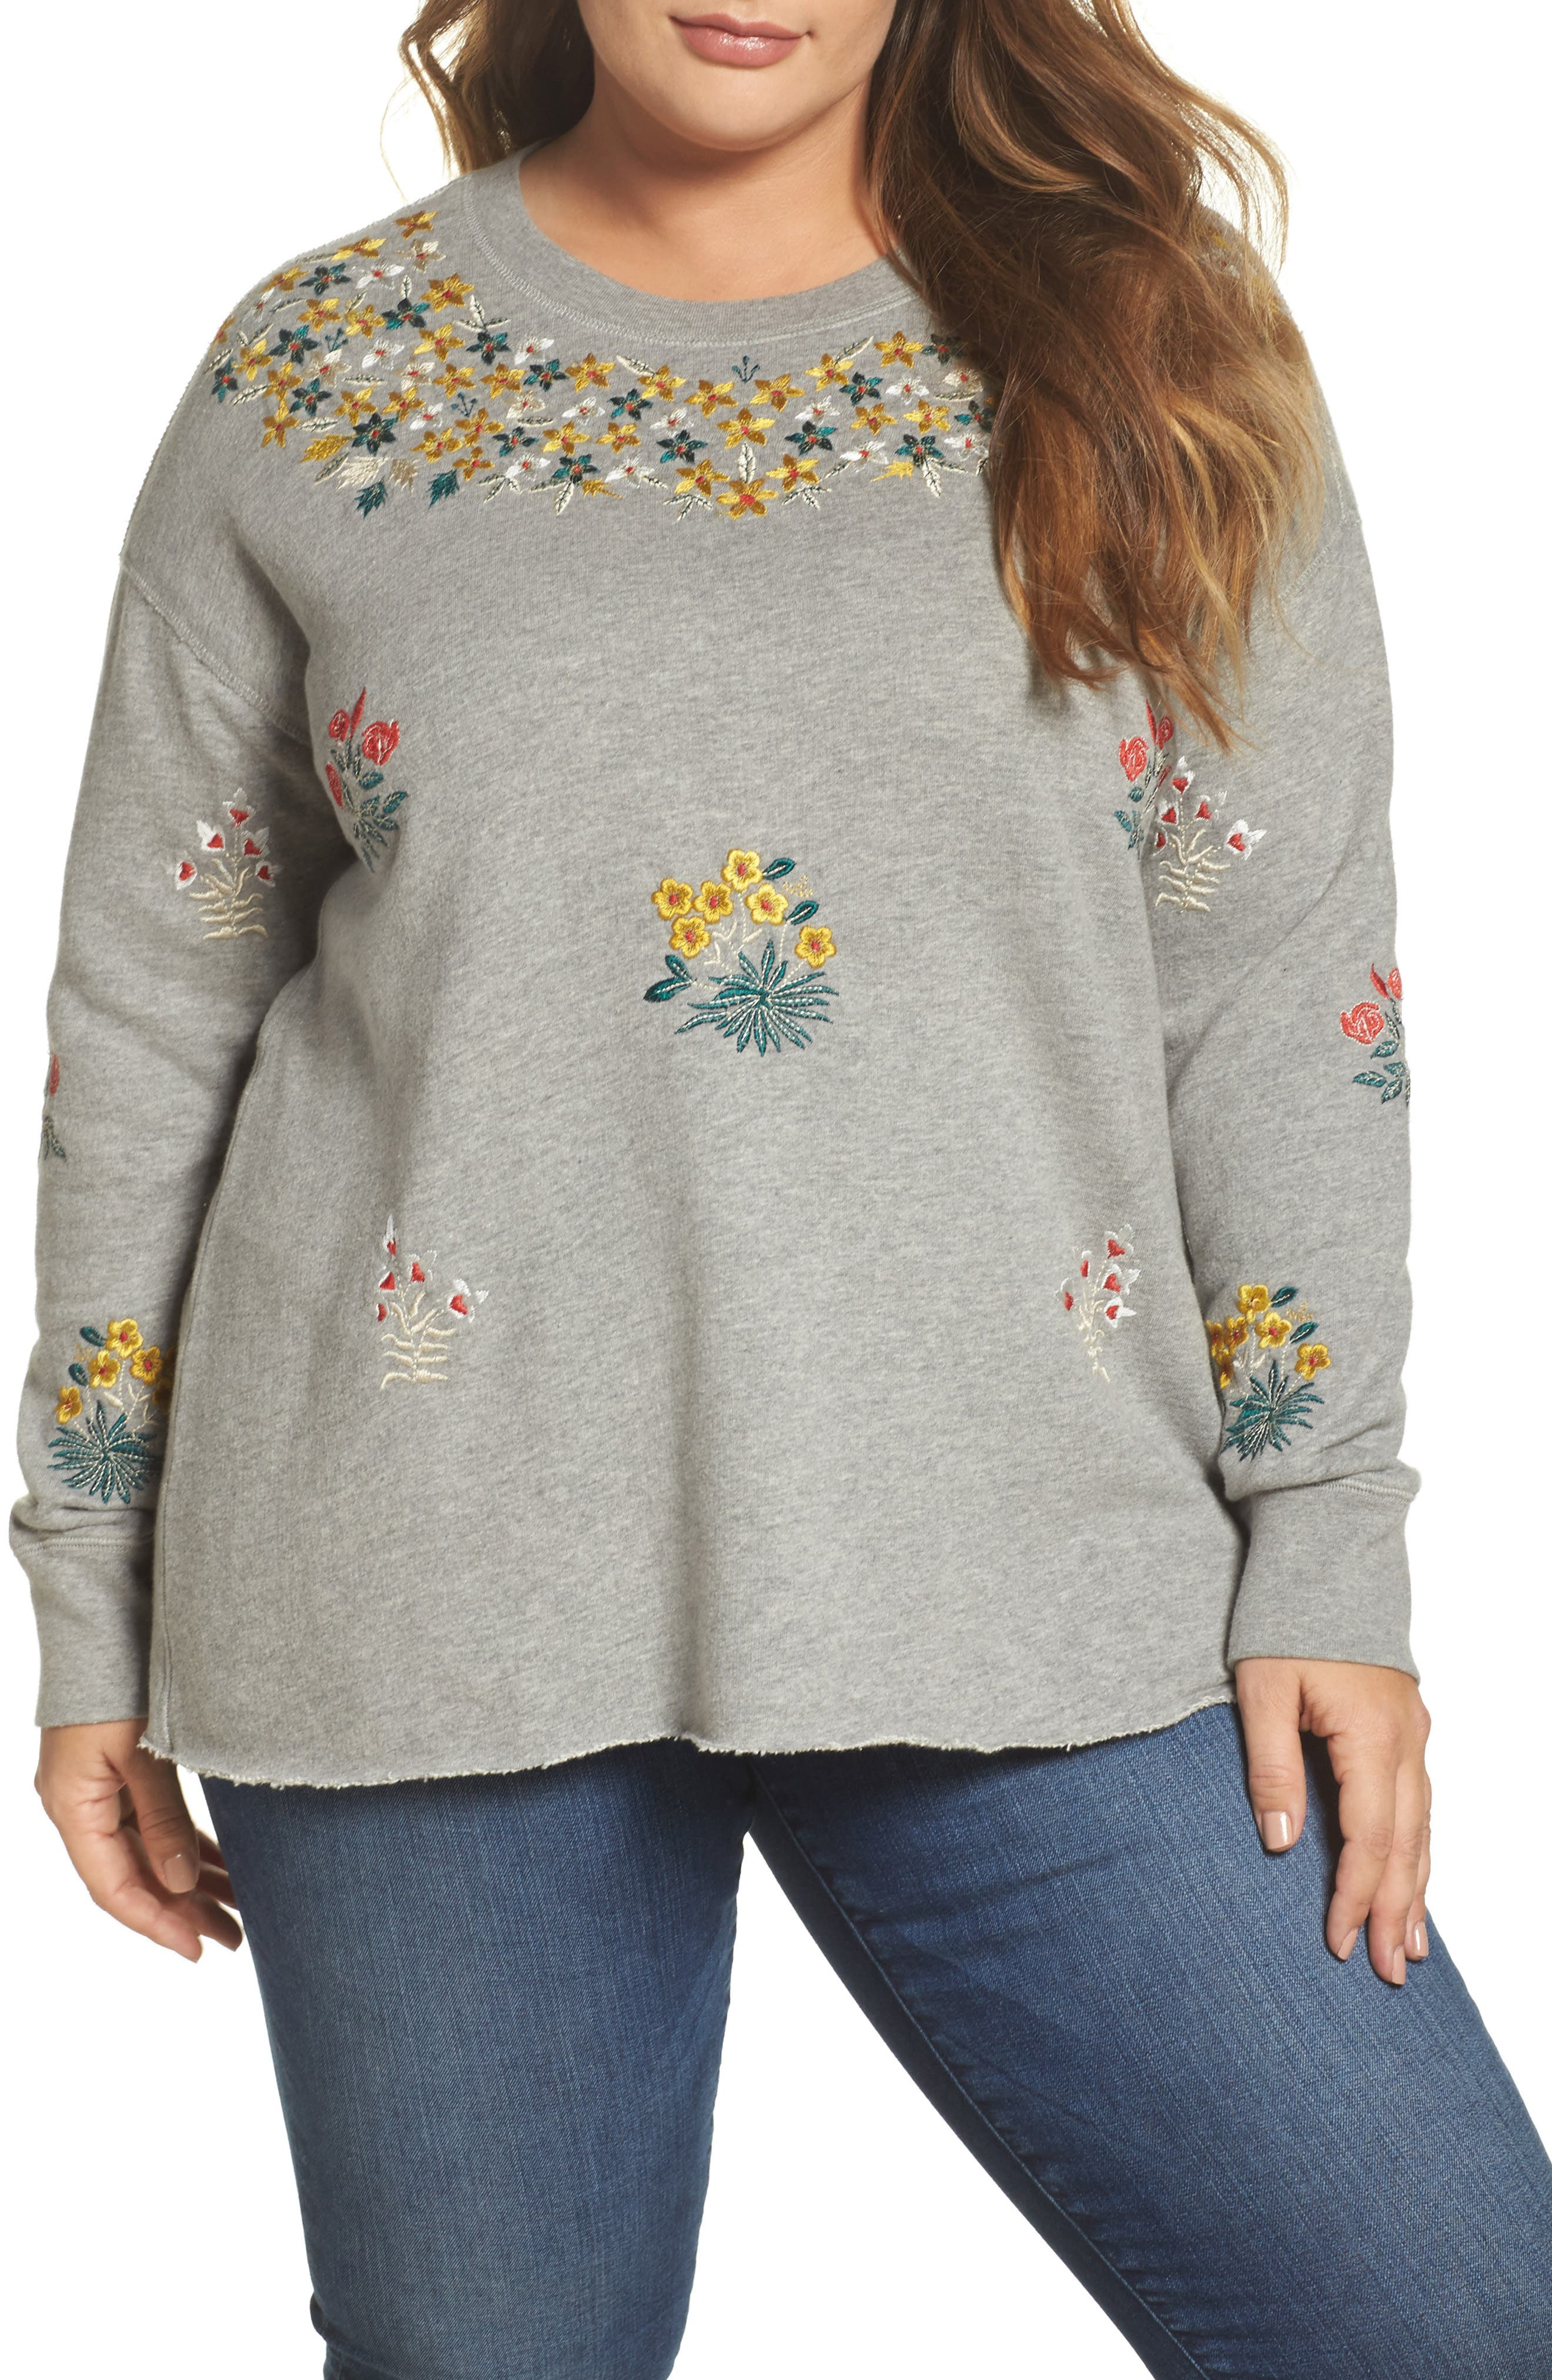 Embroidered Sweatshirt,                         Main,                         color, Heather Grey